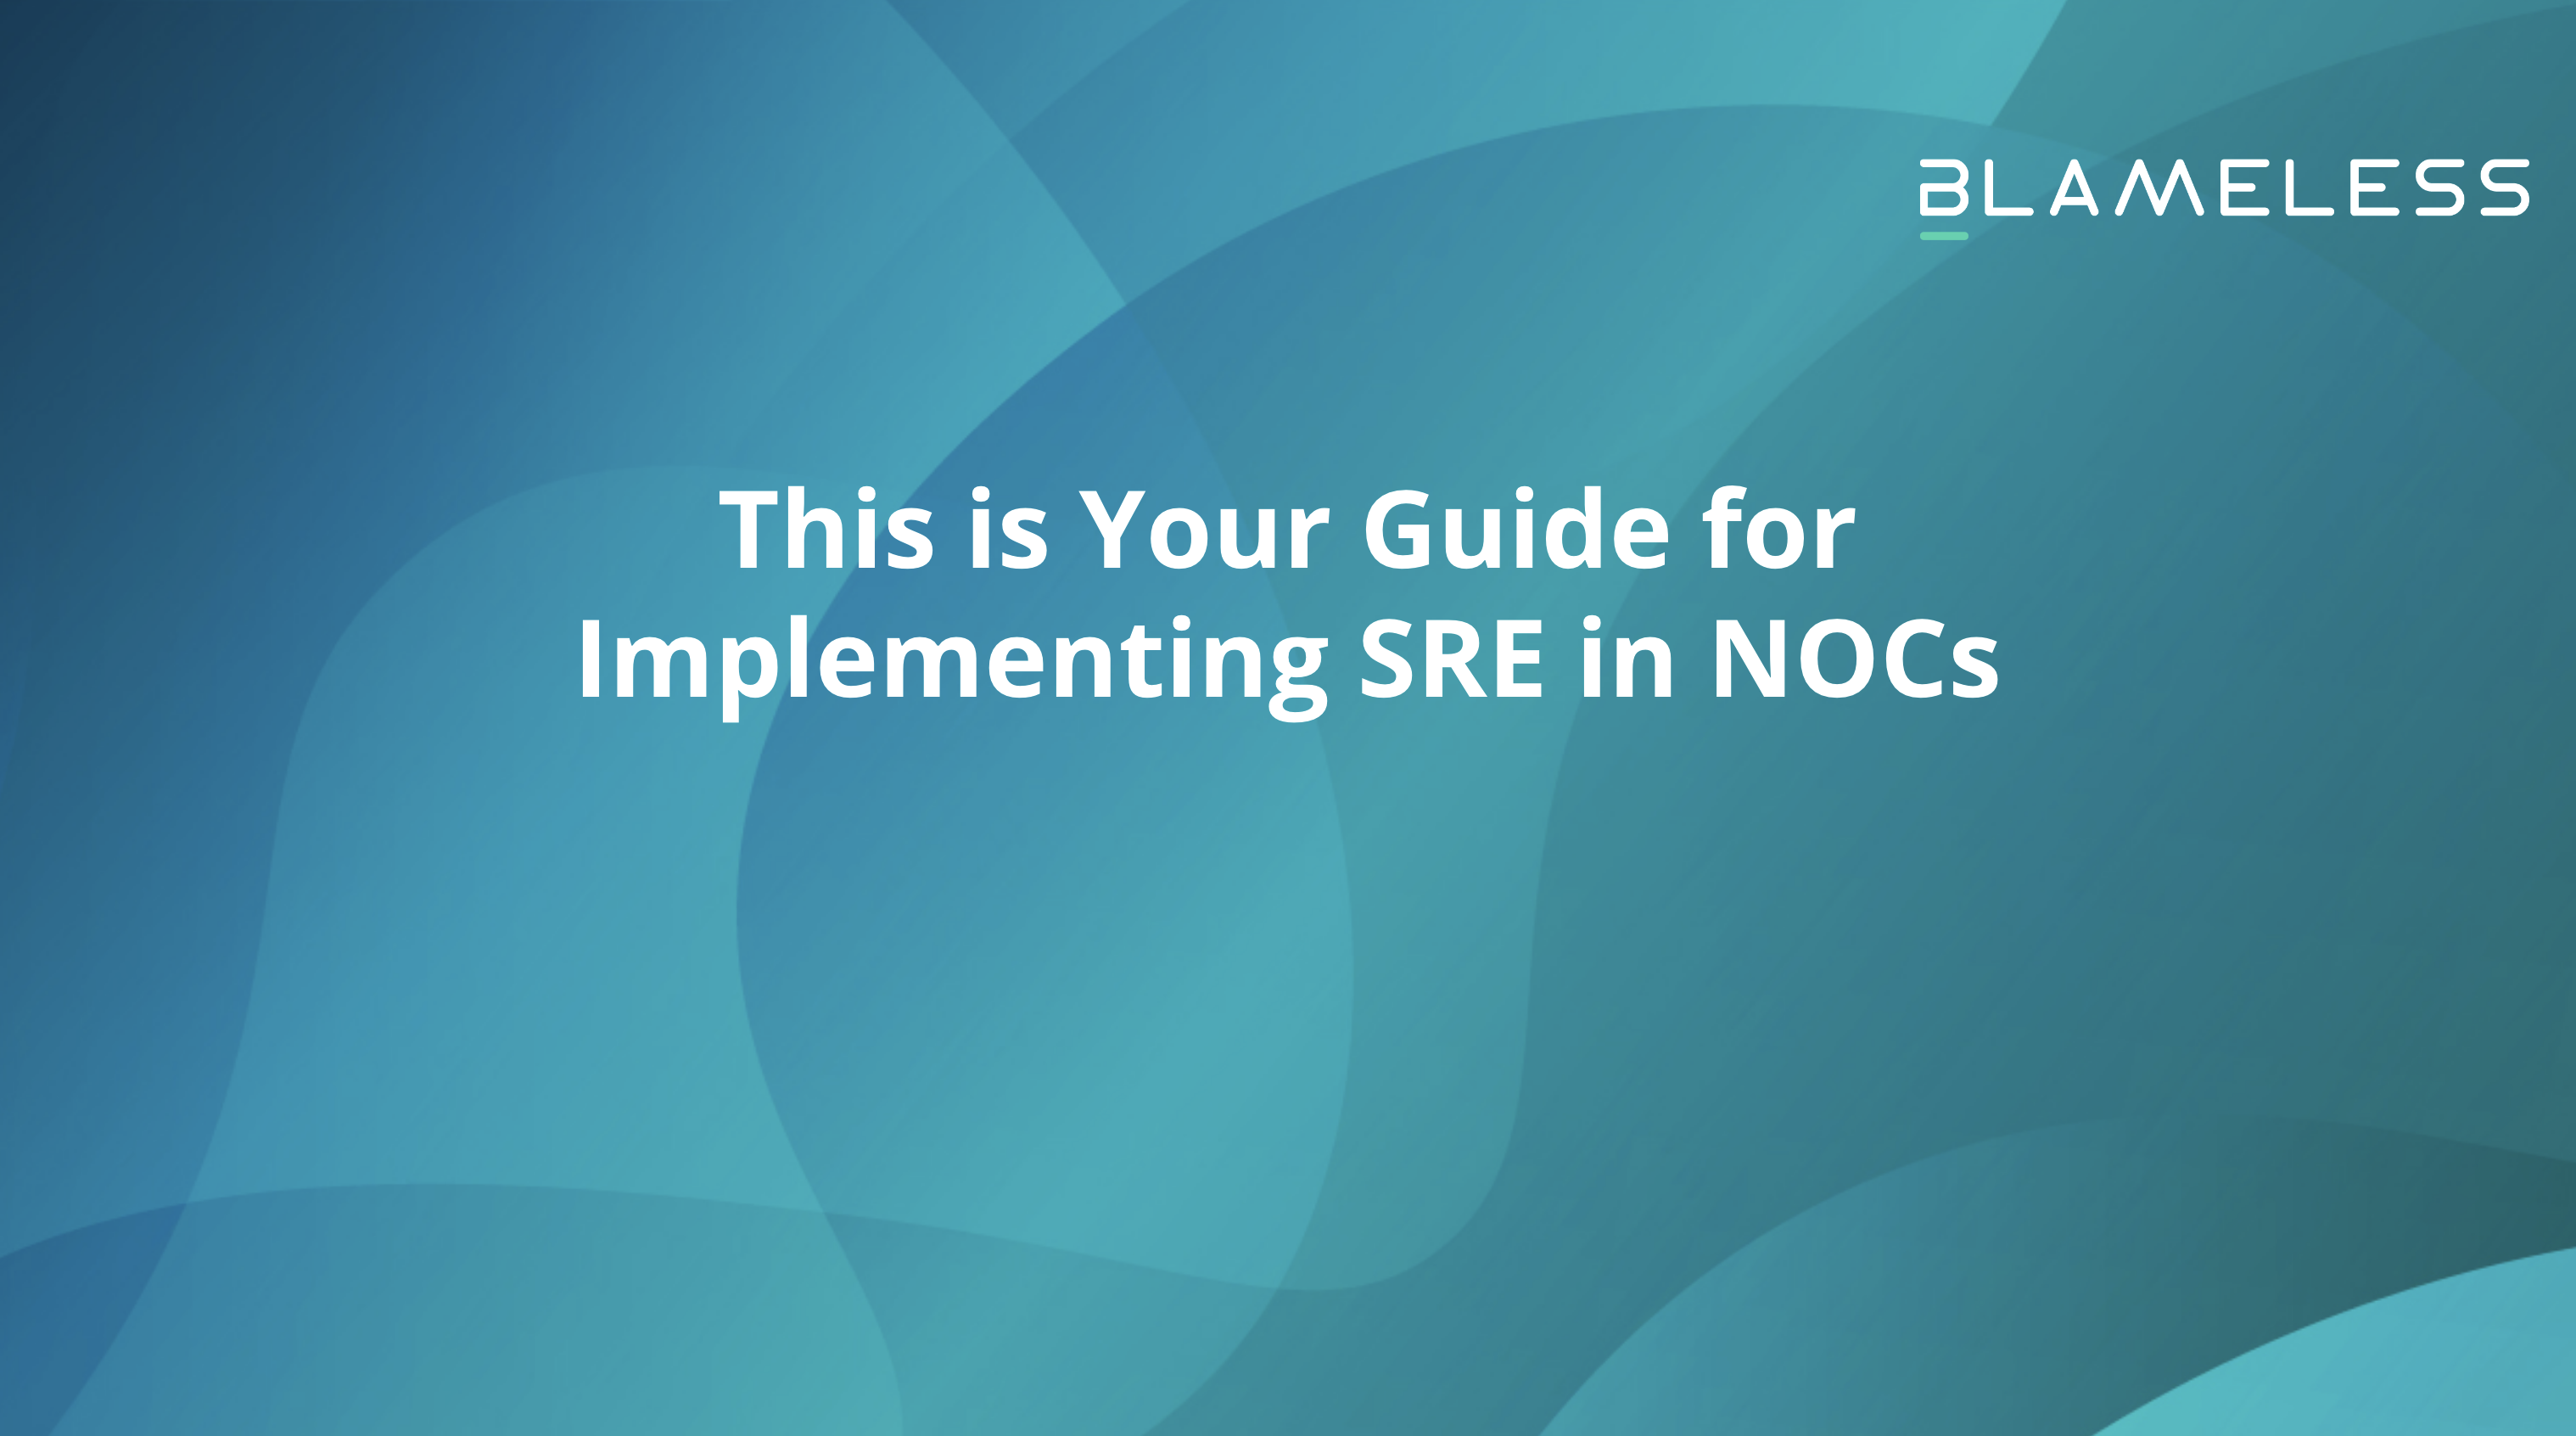 This is your Guide for Implementing SRE in NOCs